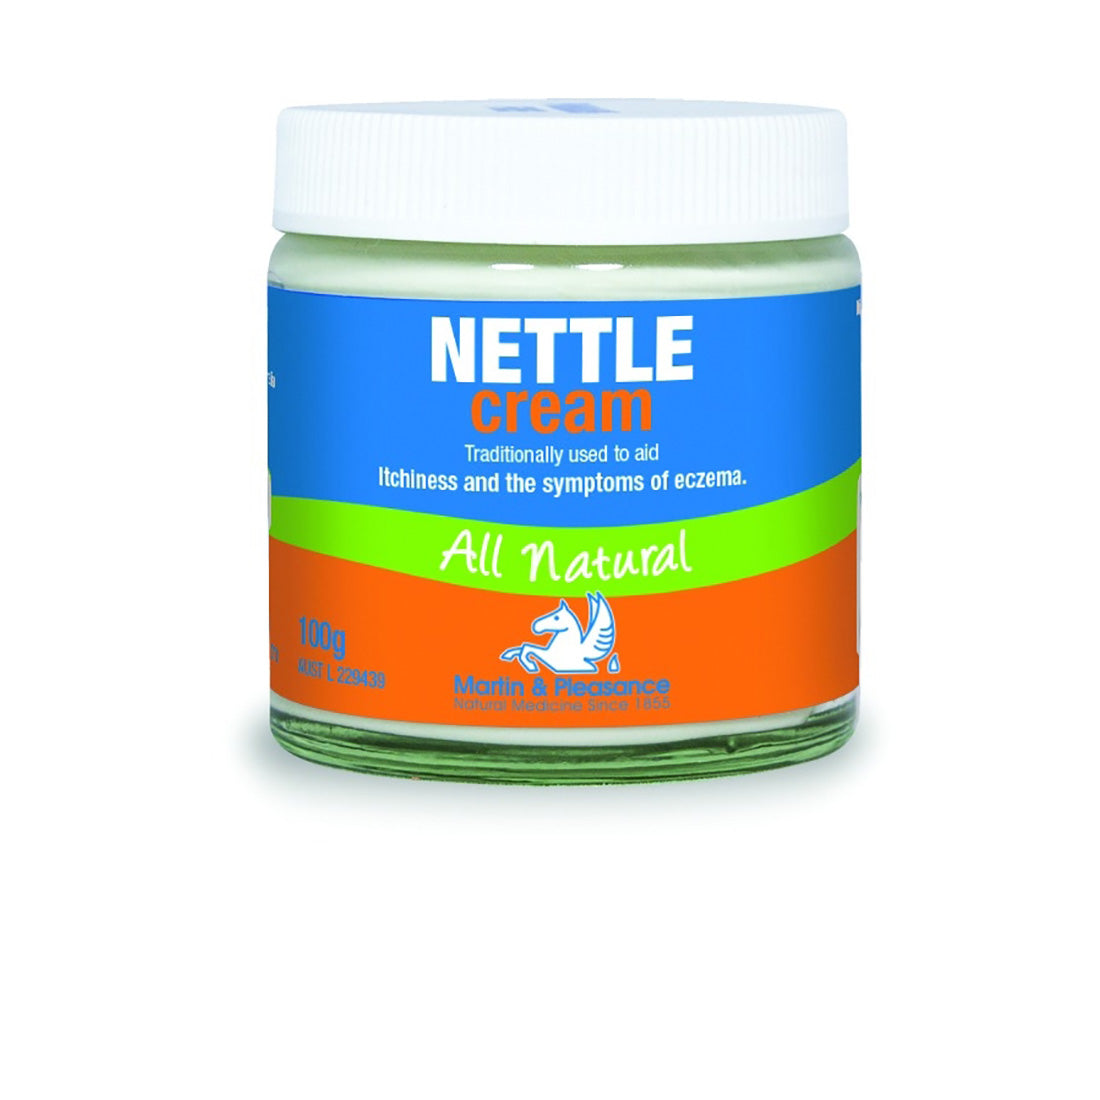 Martin & Pleasance Herbal Cream Nettle 100g